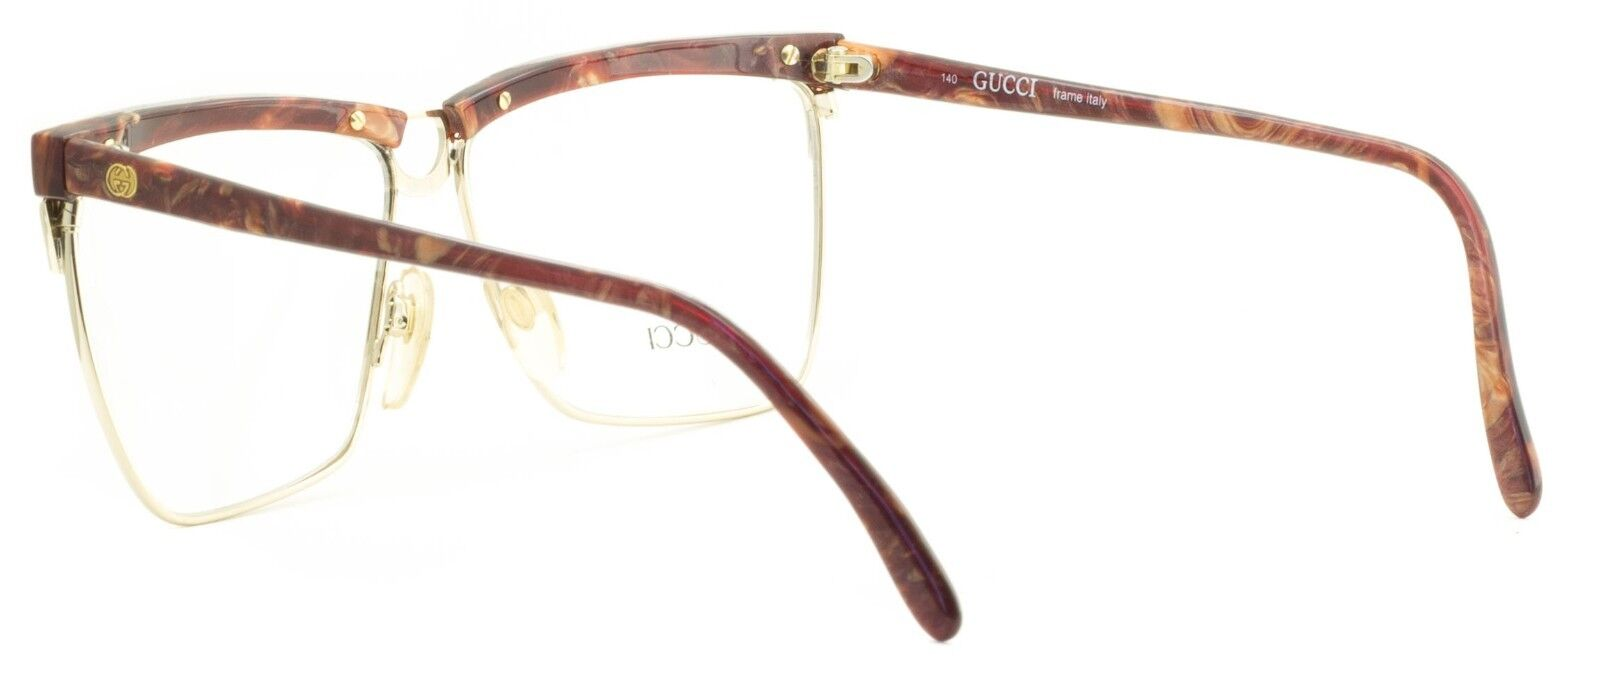 0ed926feee7 Gucci GG 2301 50u Eyewear Frames Glasses RX Optical Eyeglasses Italy ...